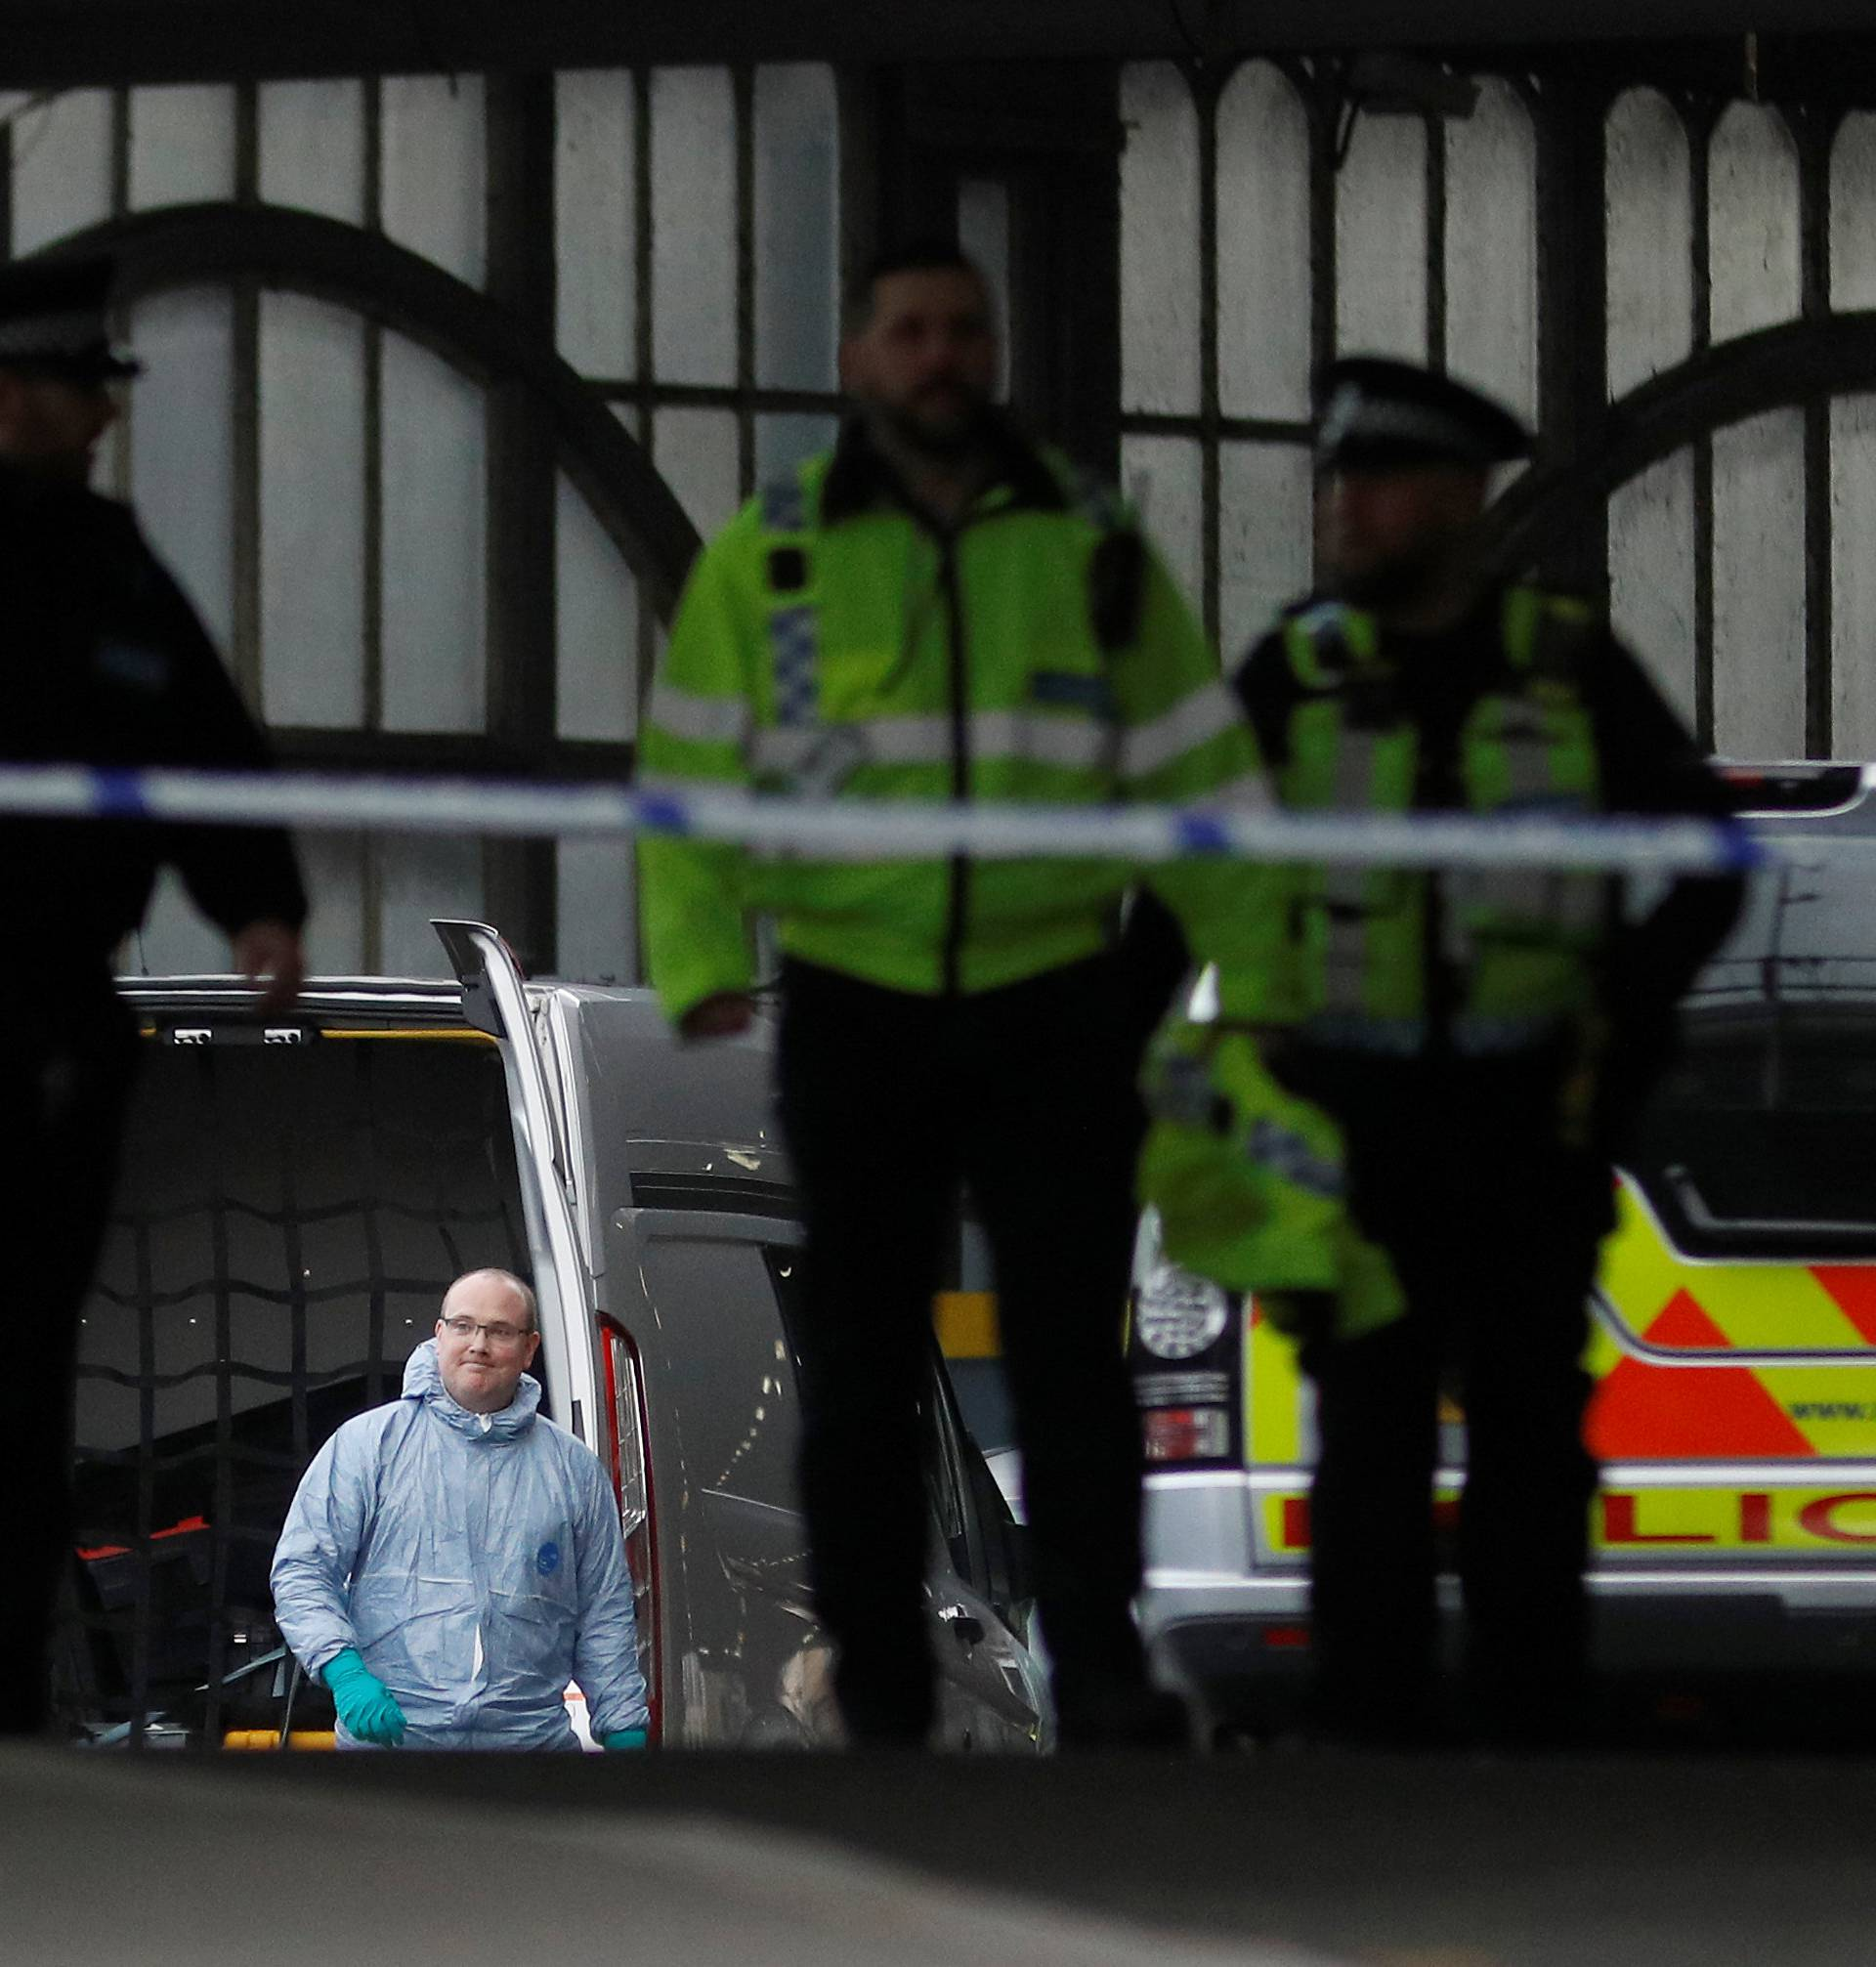 Police officers including one wearing a forensic suit, are seen in a cordoned off area at Waterloo station near to where a suspicious package was found, in London